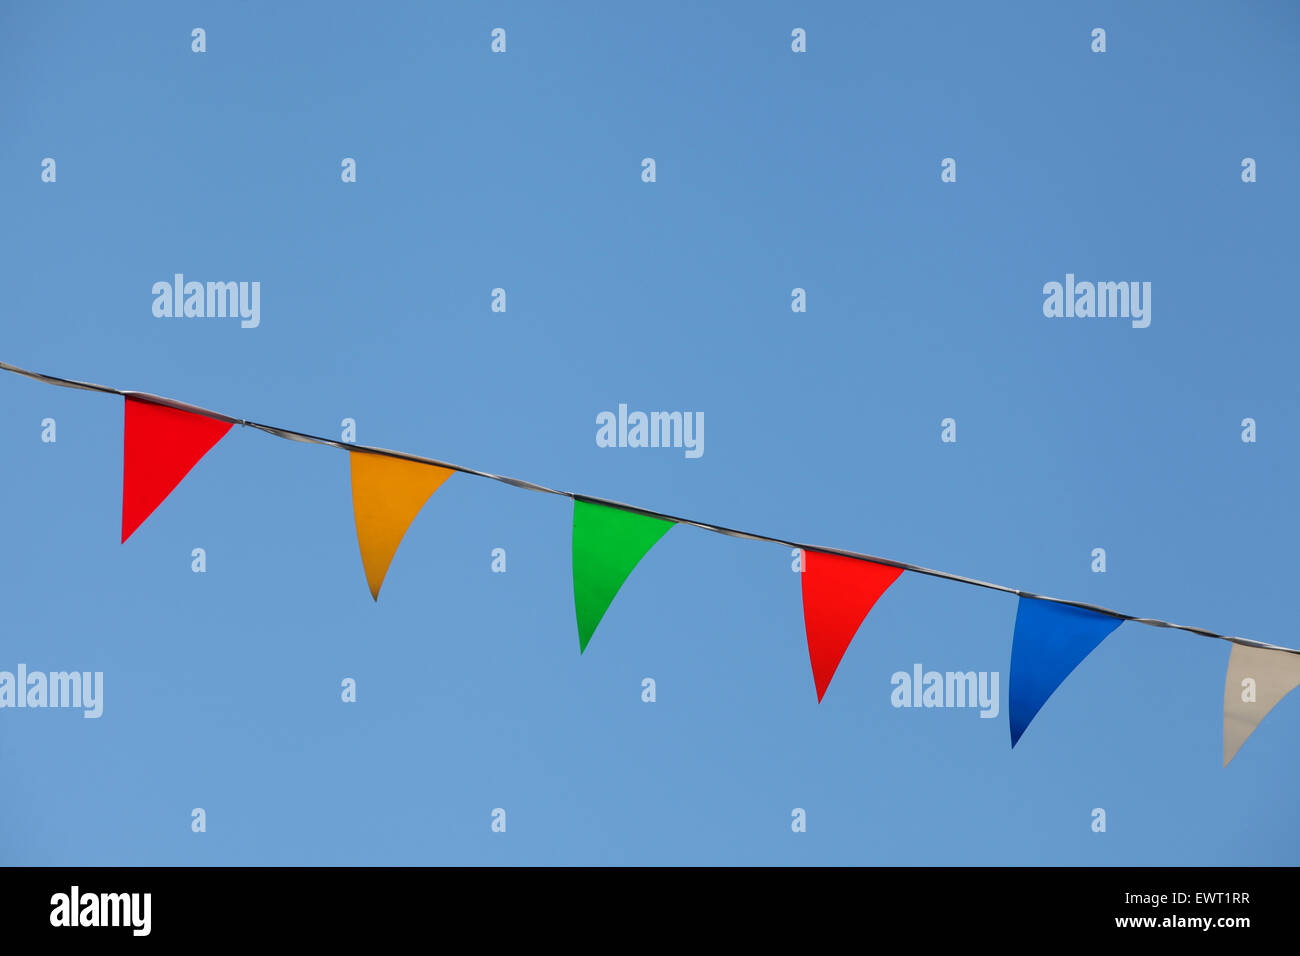 Coloured bunting flags against a blue sky background - Stock Image